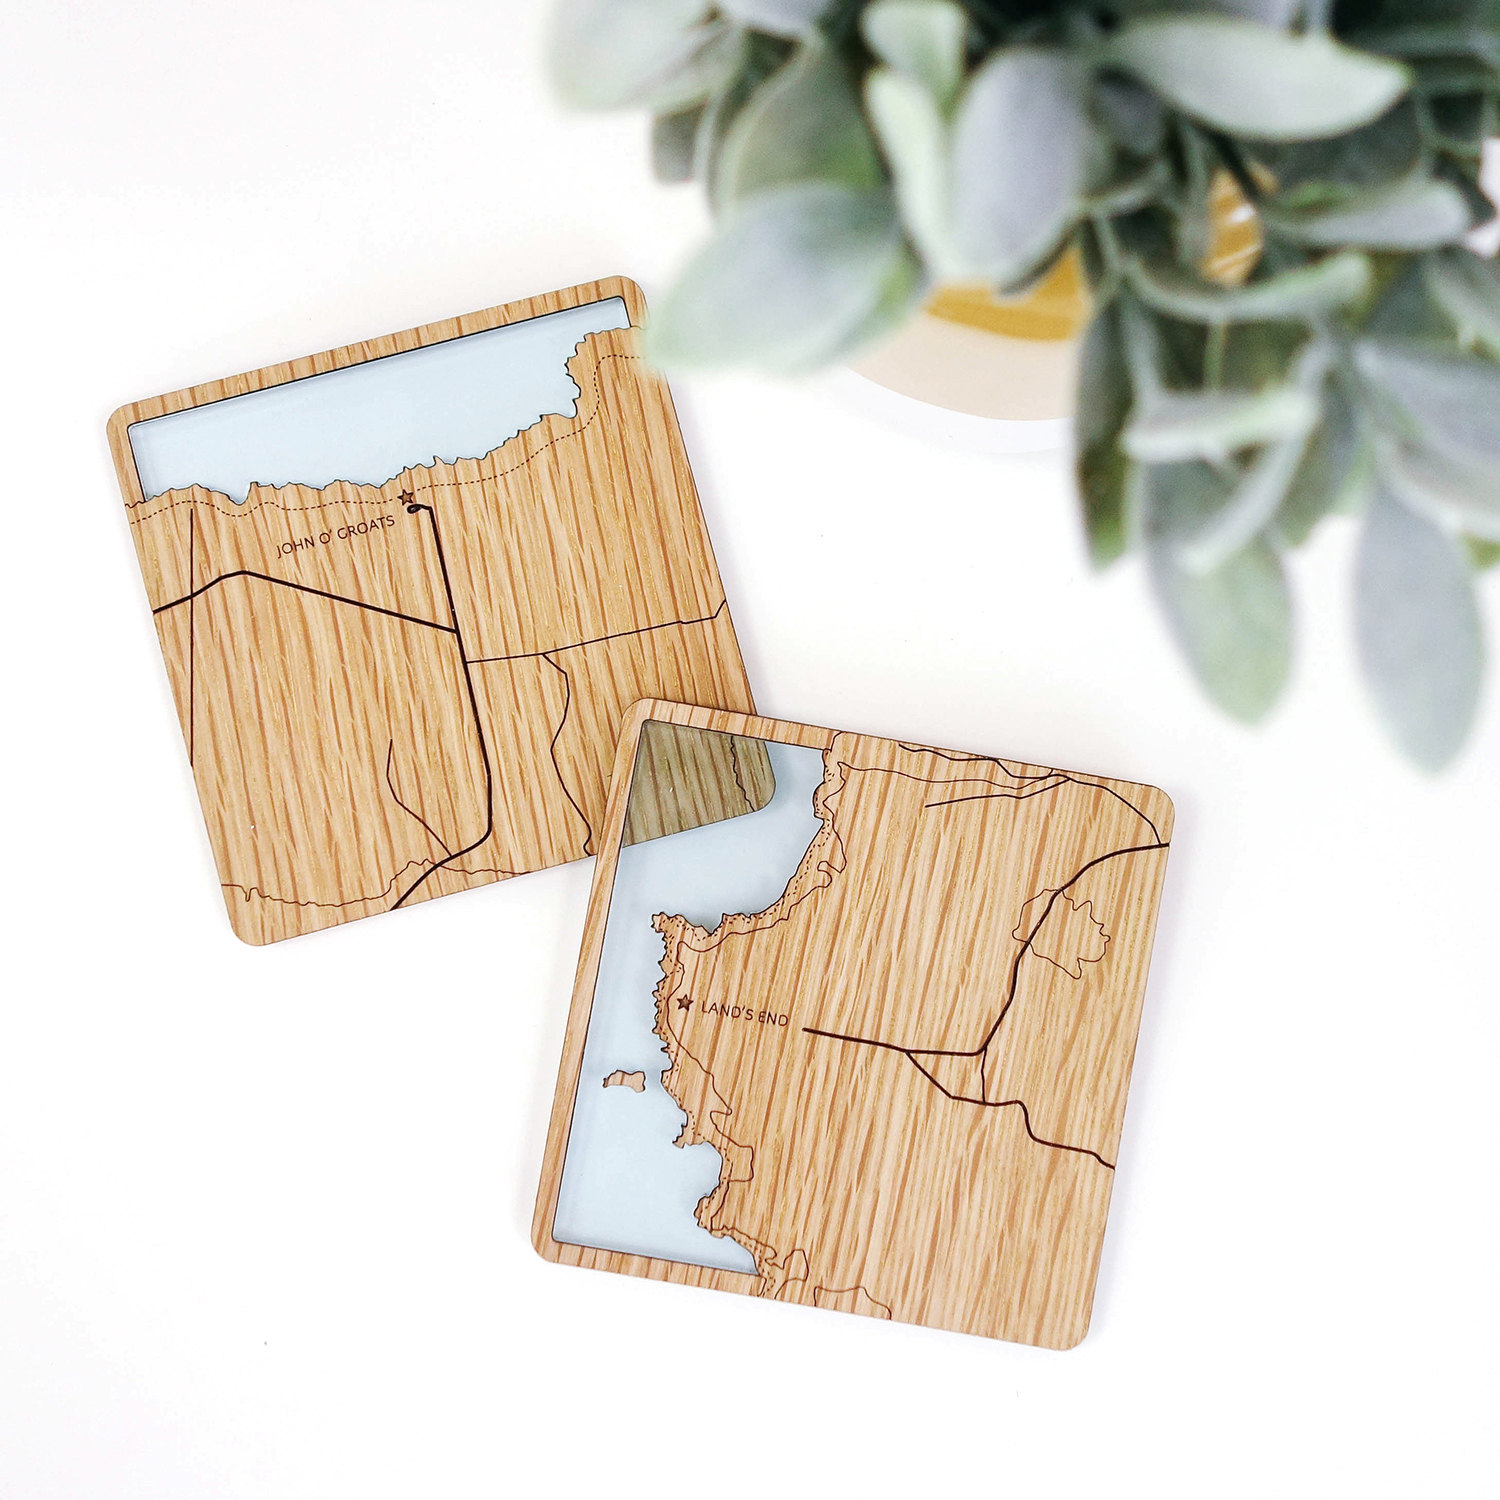 Land's End to John o' Groats Contoured Coasters